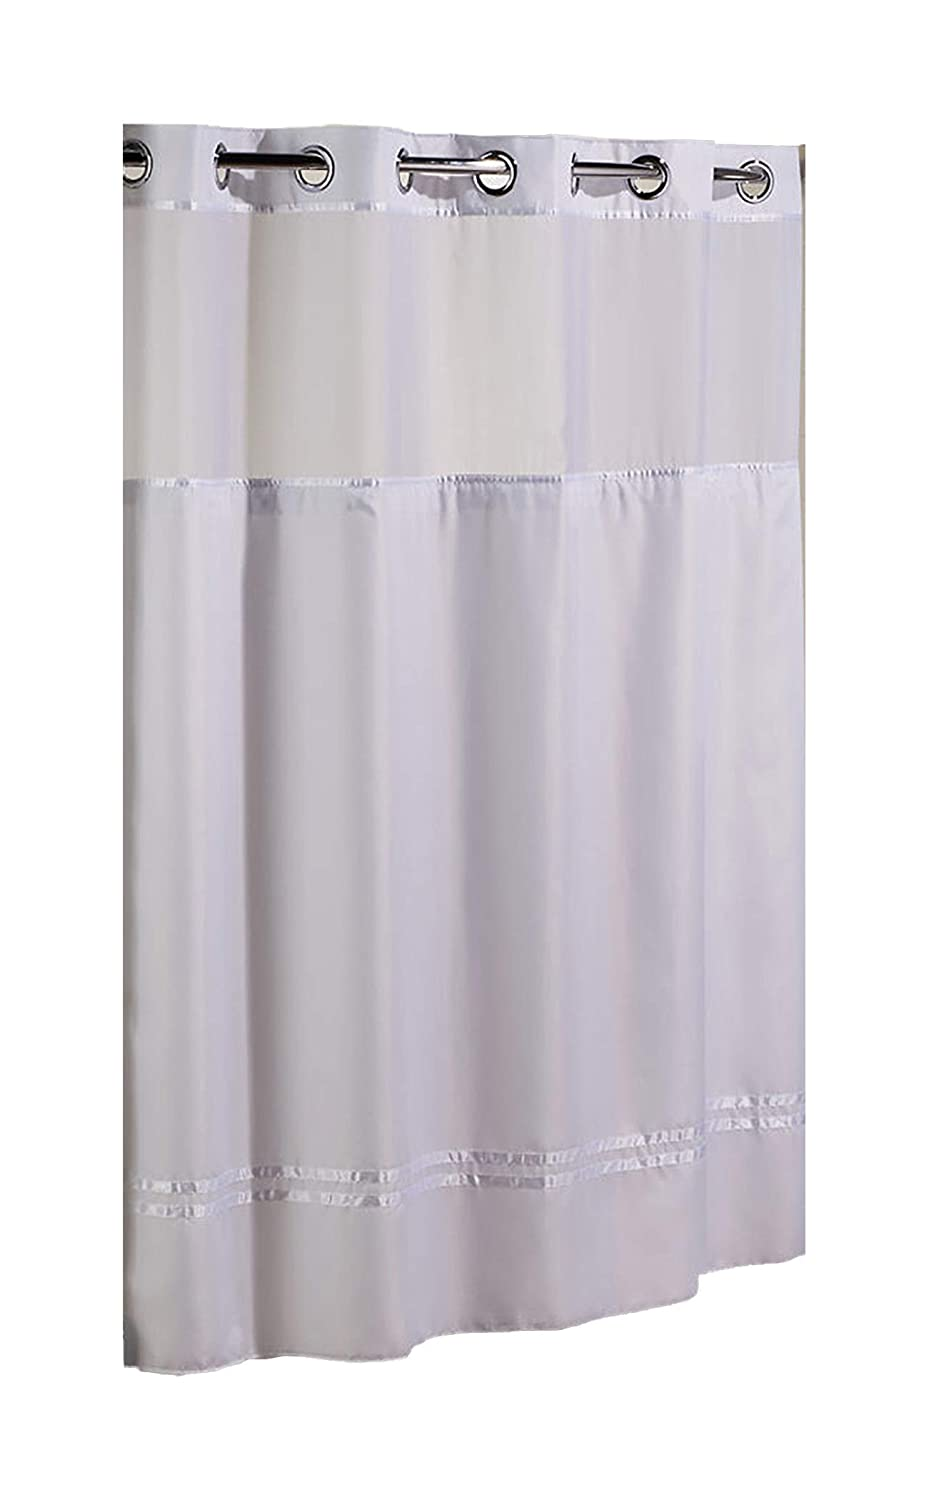 HOOKLESS ESCAPE SHOWER CURTAIN, WITH SNAP IN LINER, BEIGE WITH BEIGE STRIPE, 71 IN. X 74 IN.